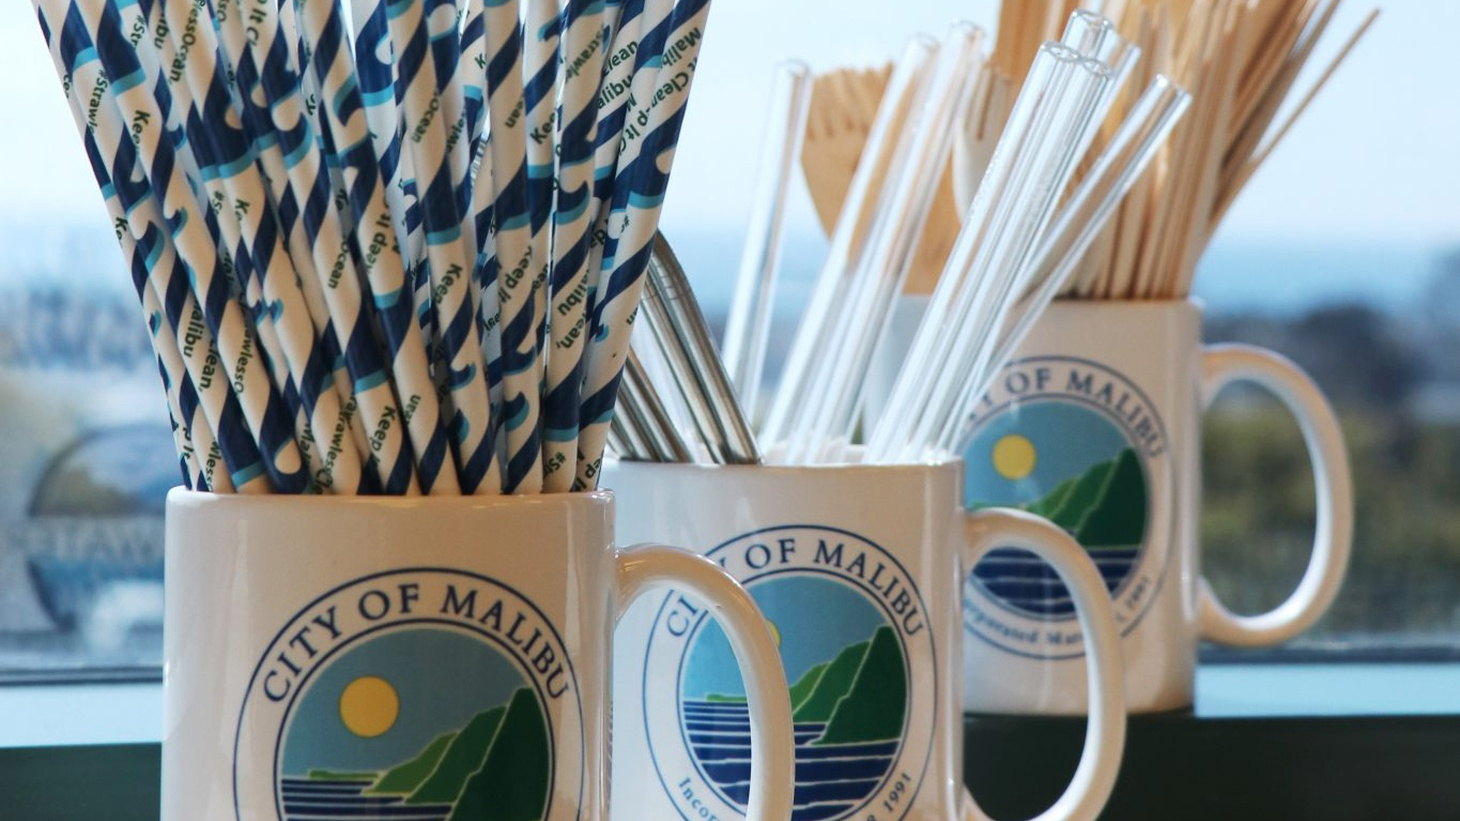 If you're at a restaurant or cafe in Malibu and ask for a straw, starting June 1 you won't be given a single-use plastic straw. The same goes for stir sticks or other plastic utensils.